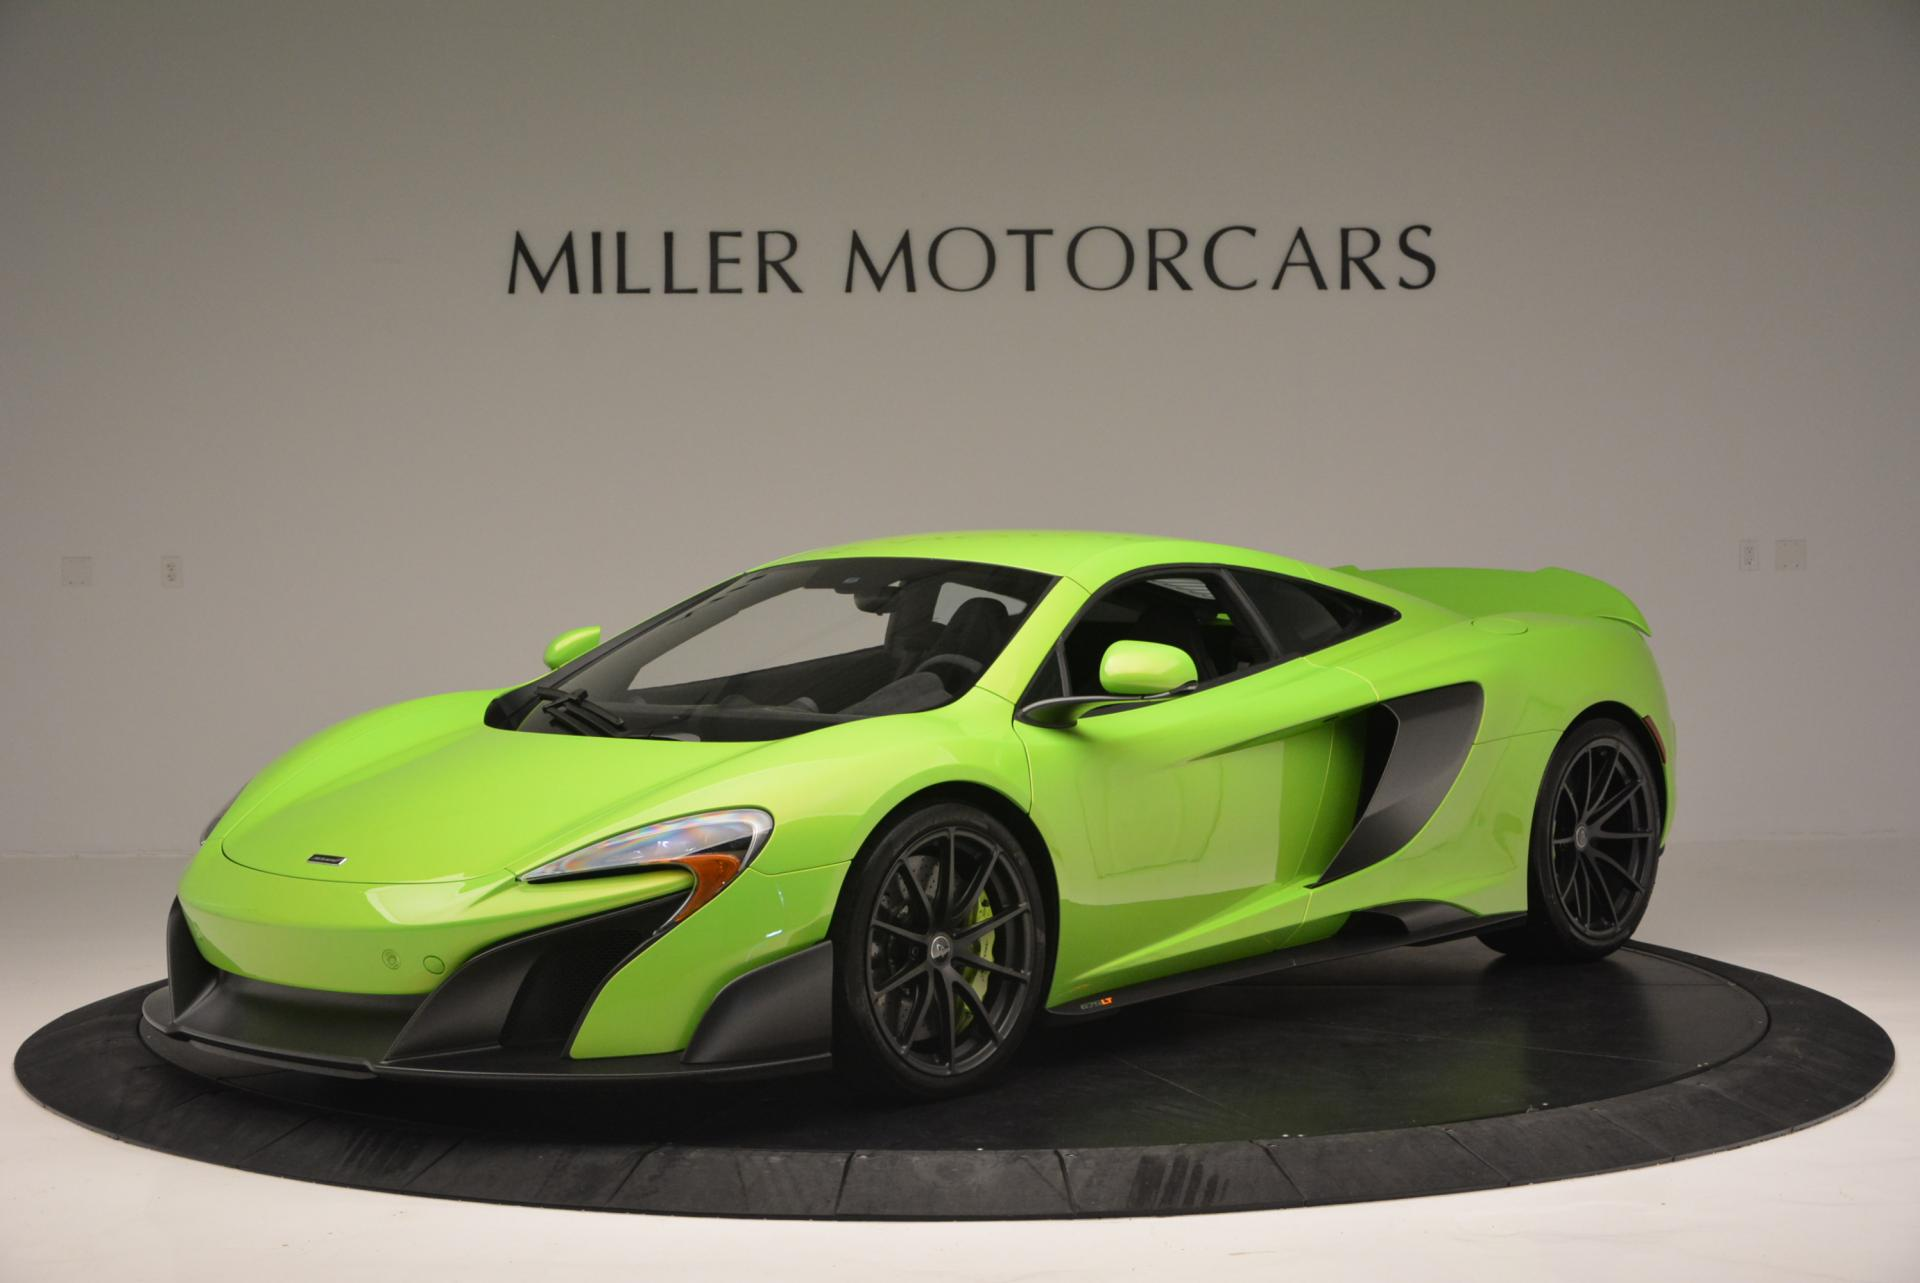 Used 2016 McLaren 675LT Coupe for sale $249,900 at Aston Martin of Greenwich in Greenwich CT 06830 1